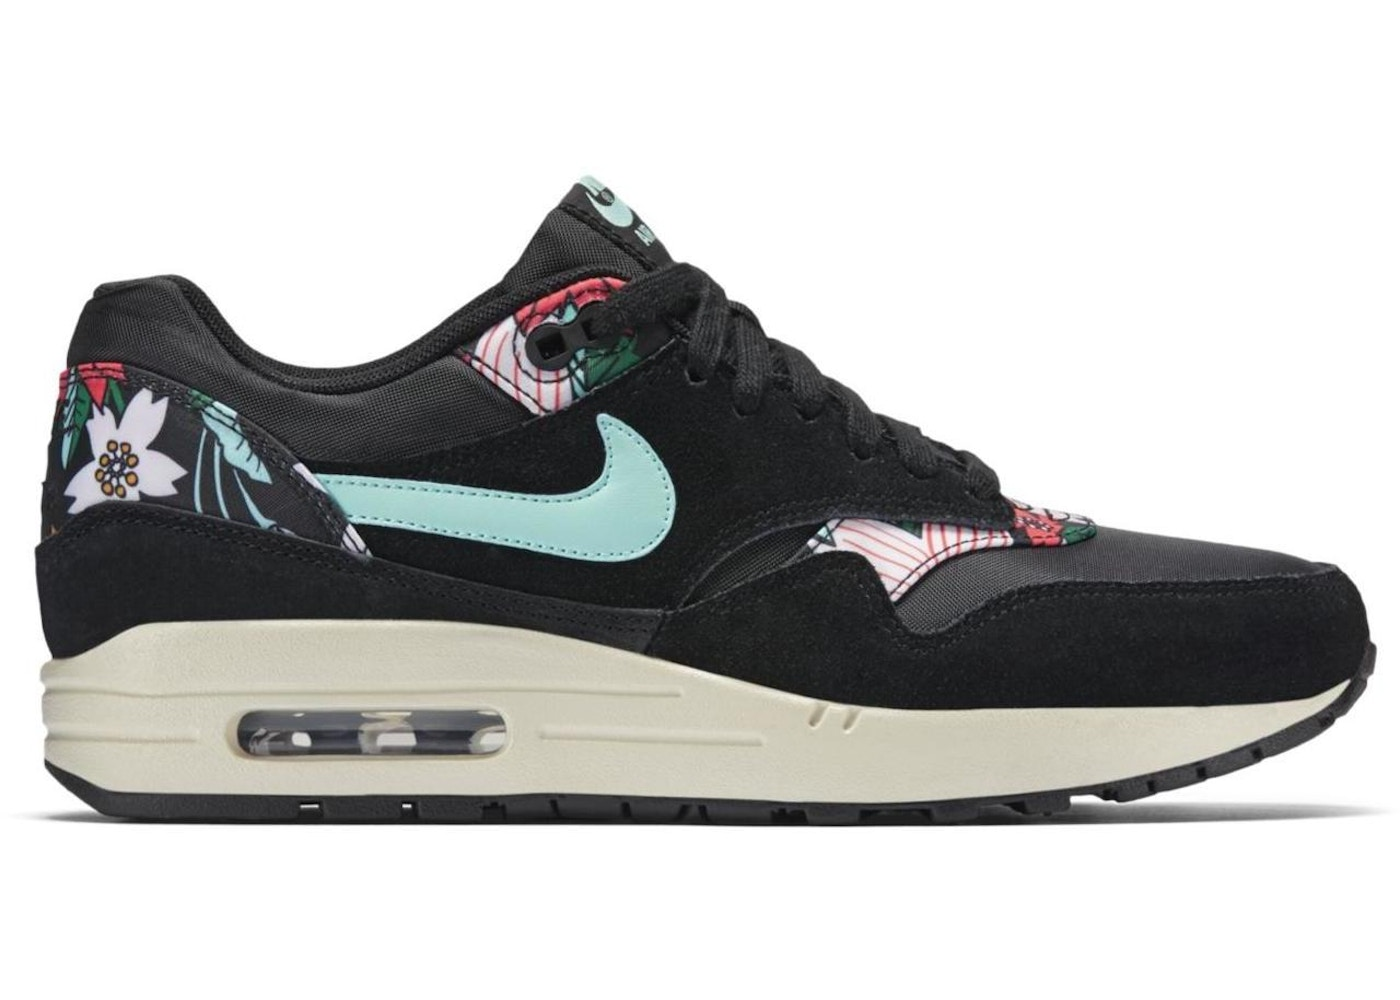 098253b6a1 Sell. or Ask. Size: 11W. View All Bids. Air Max 1 Aloha Black ...